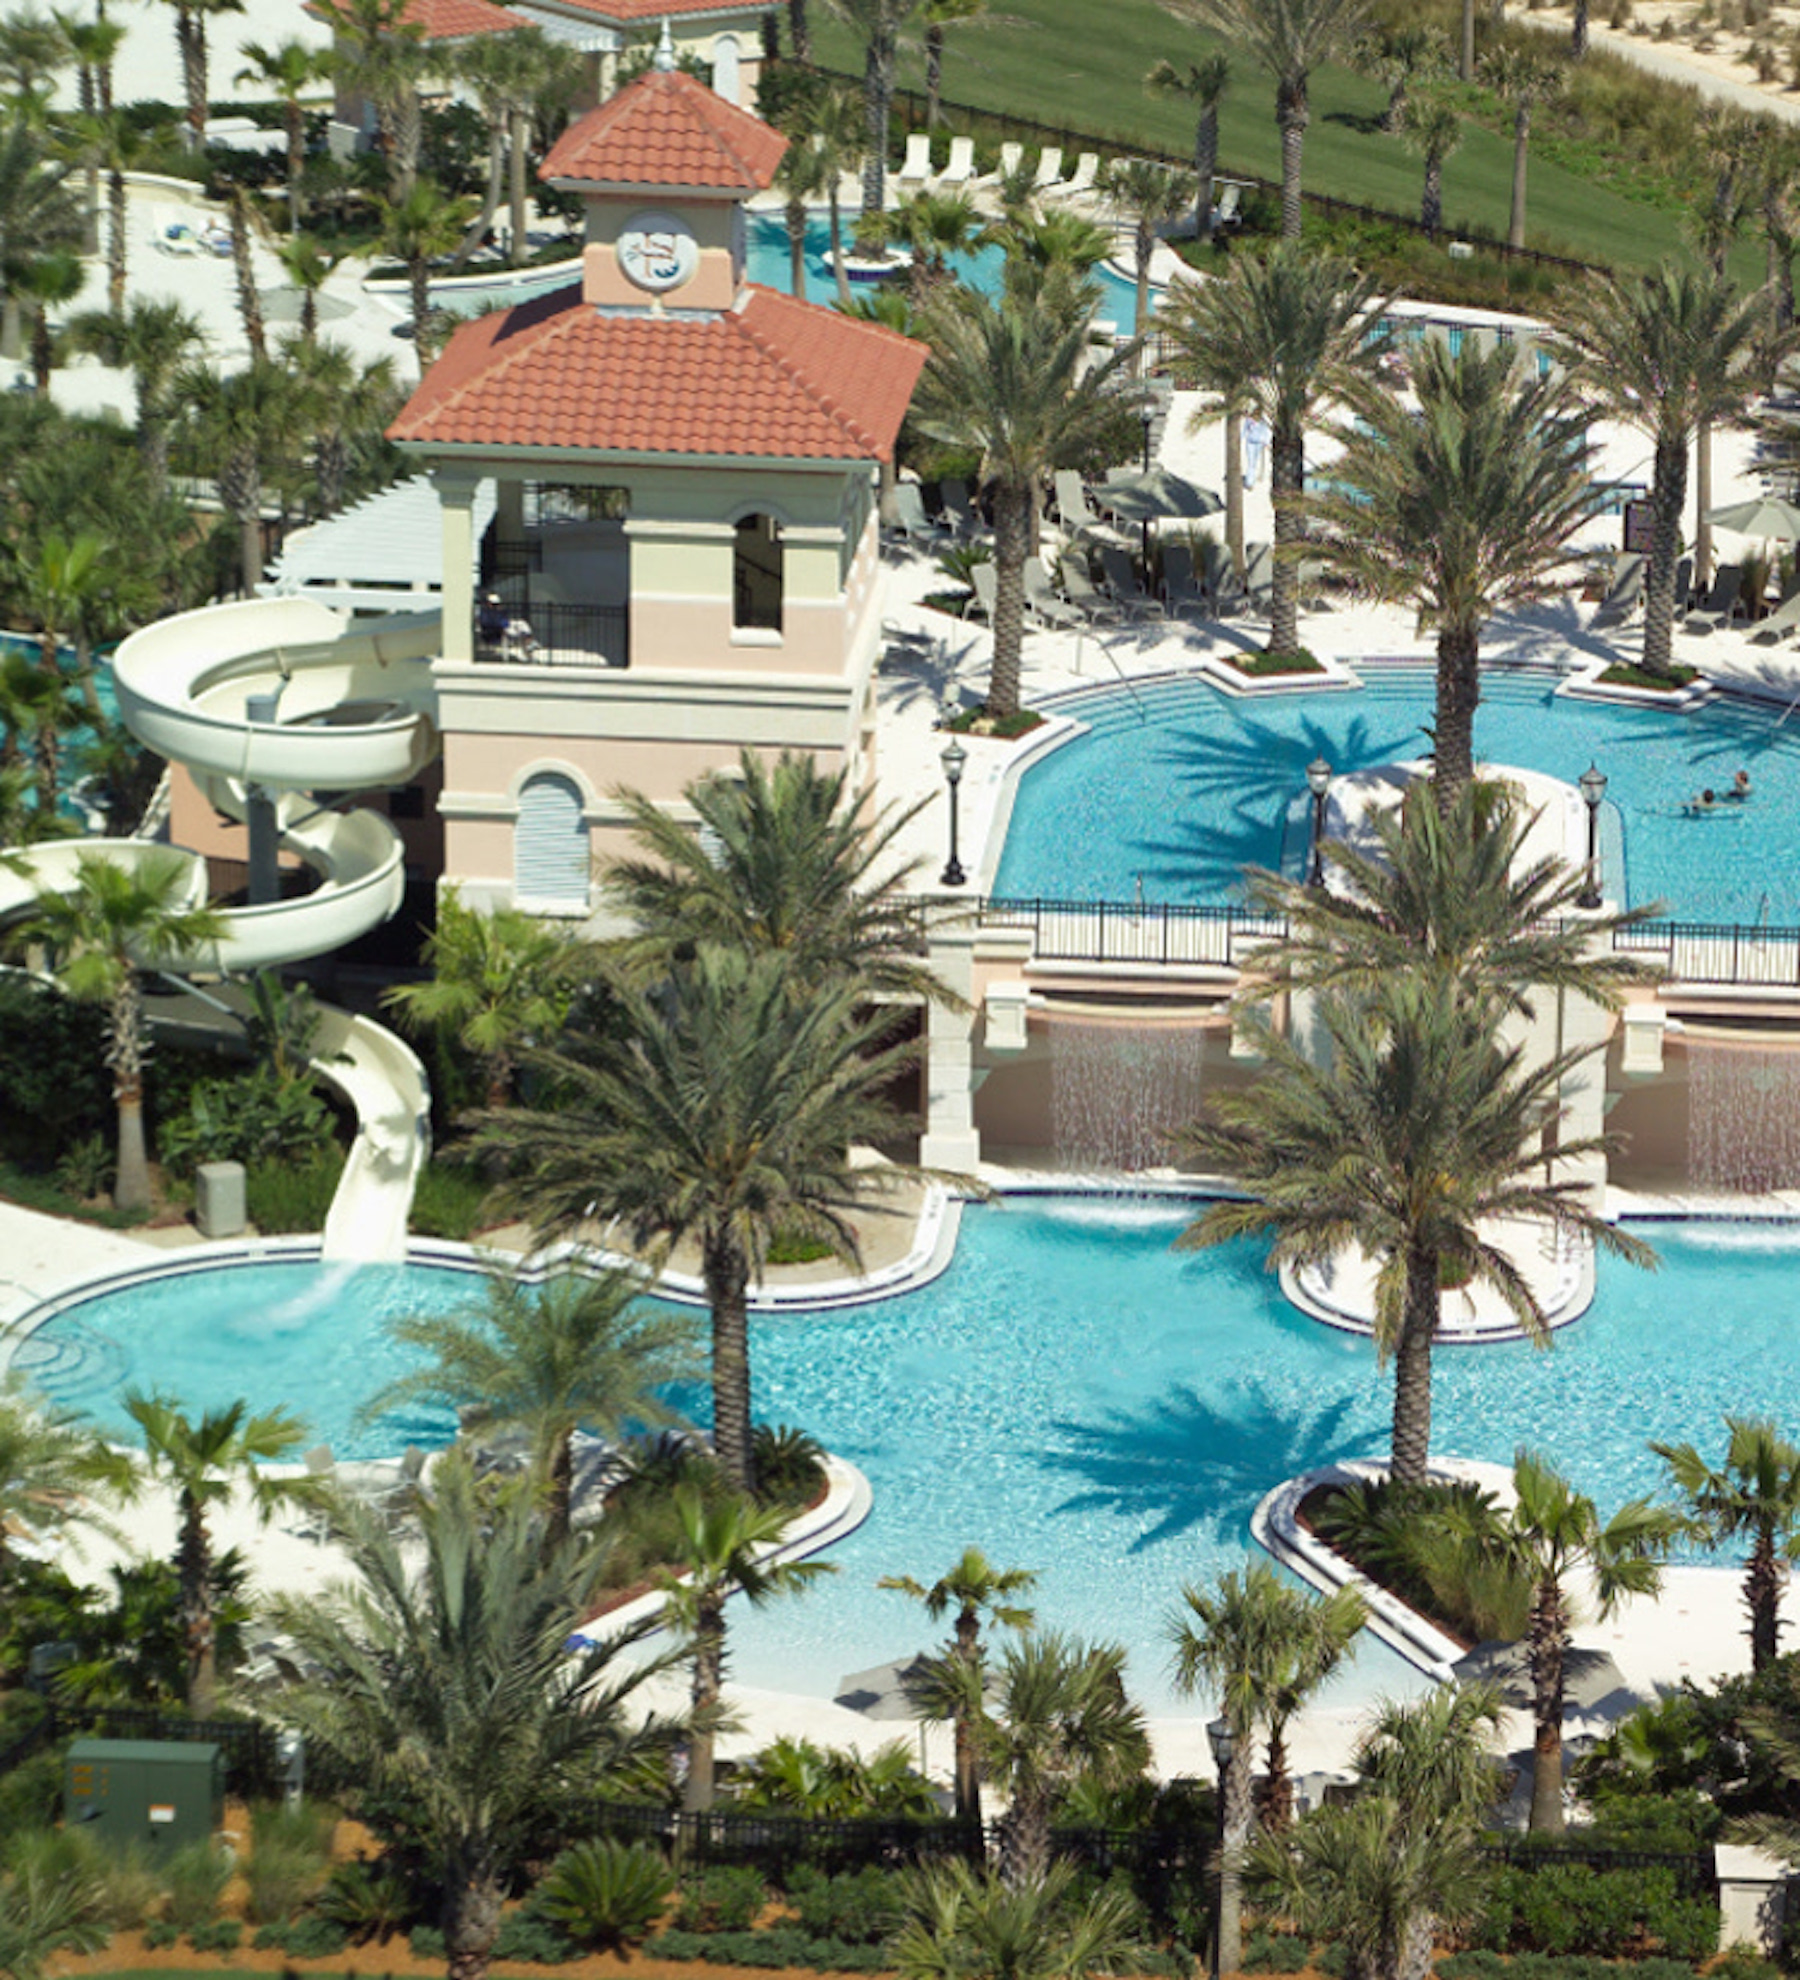 Hammock Beach resort pools